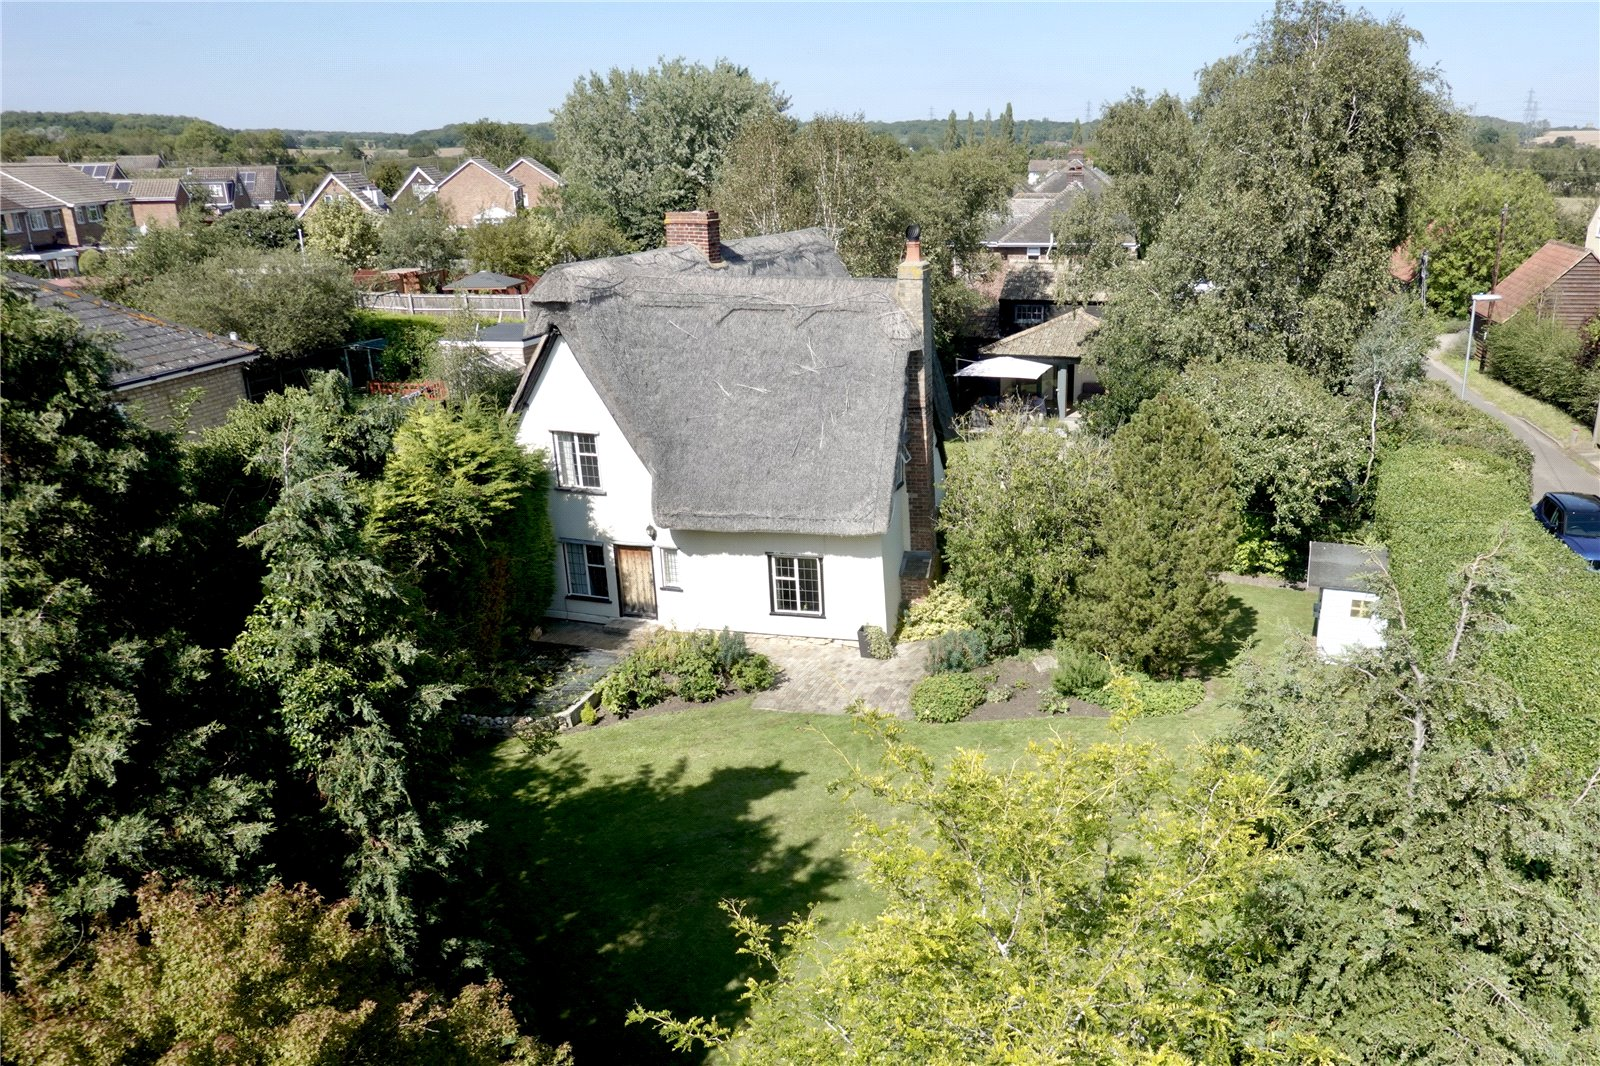 3 bed house for sale in Great Staughton  - Property Image 5